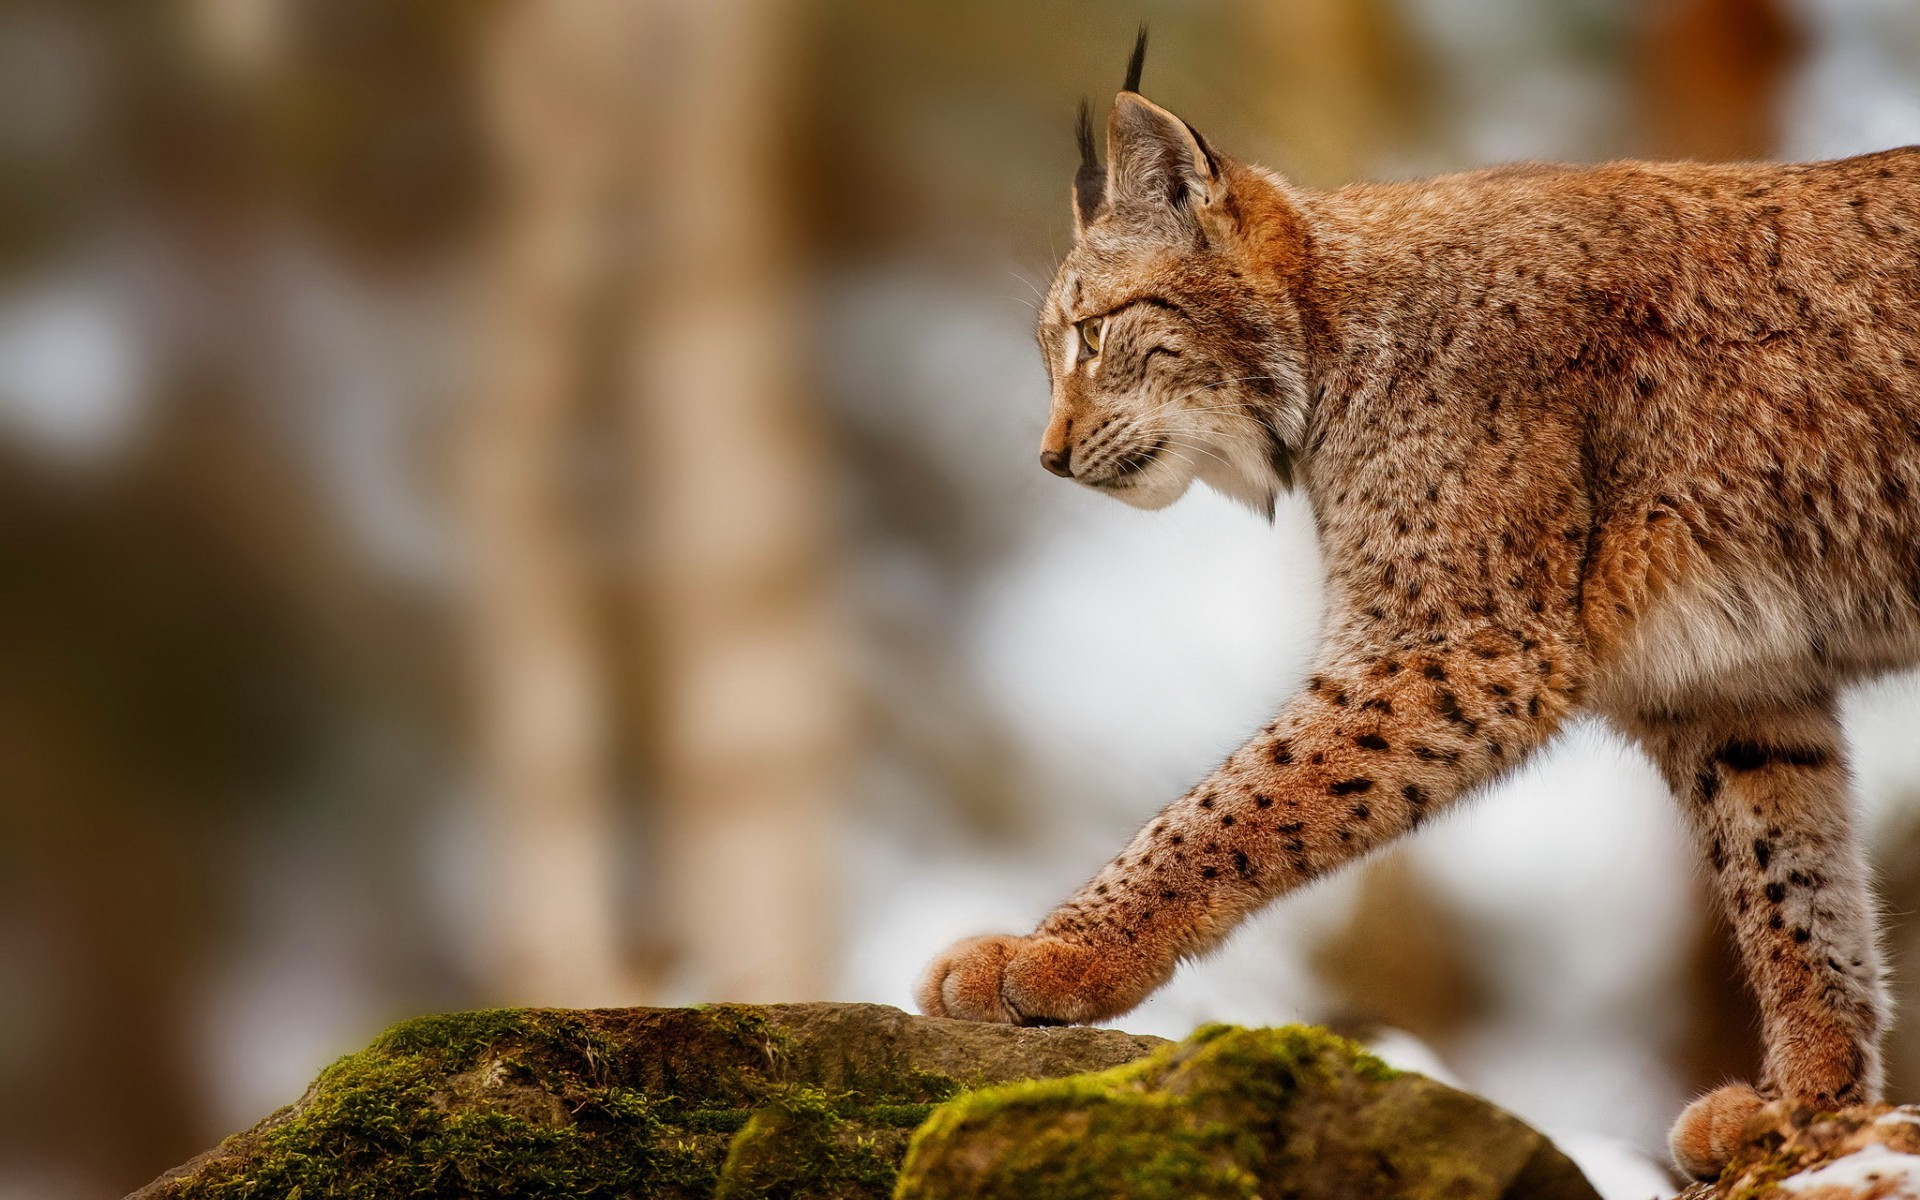 40162 download wallpaper Animals, Bobcats screensavers and pictures for free